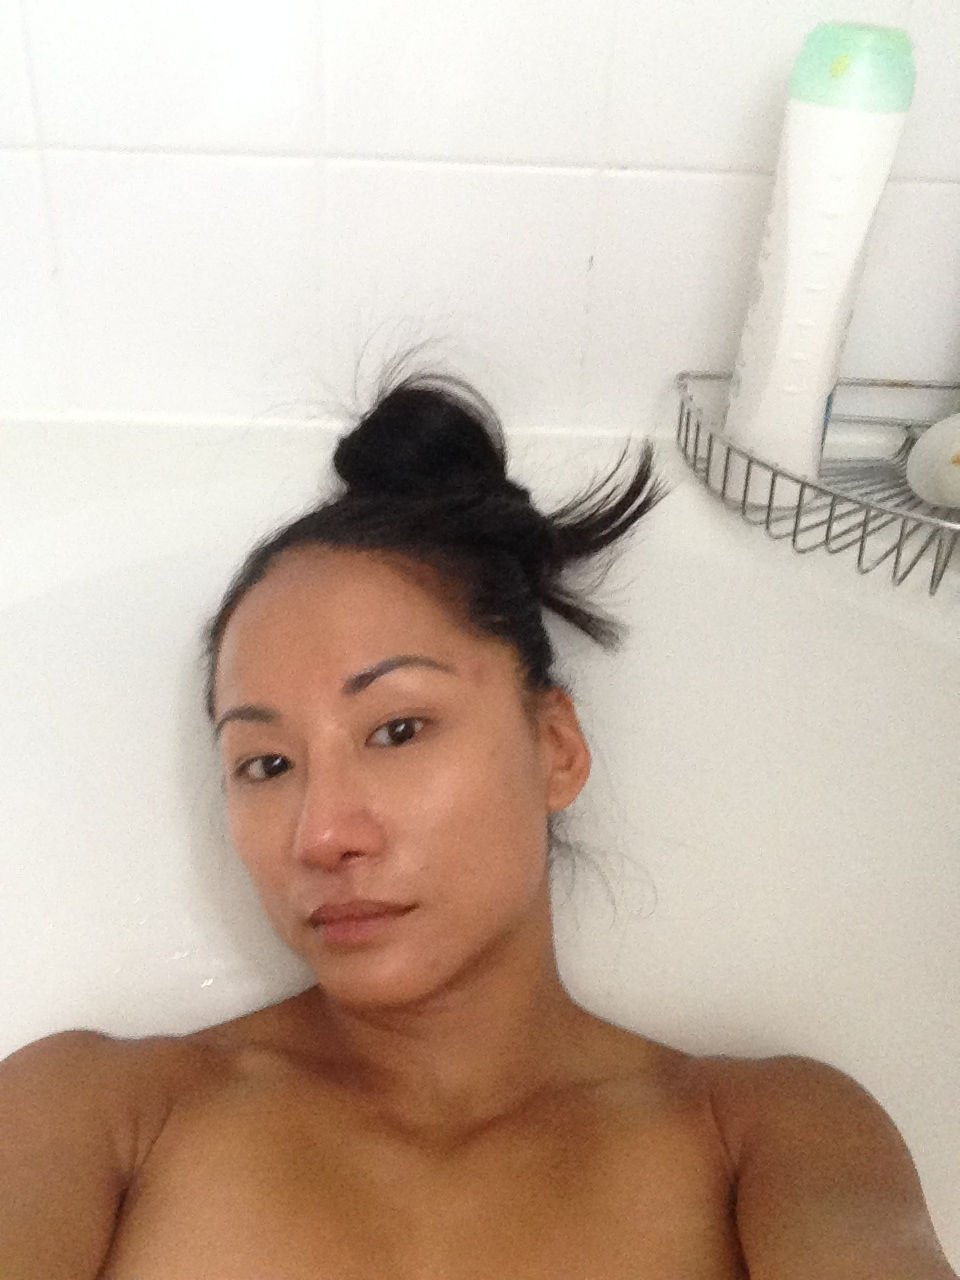 Gail Kim Porn Video gail kim nude photos and videos | #thefappening